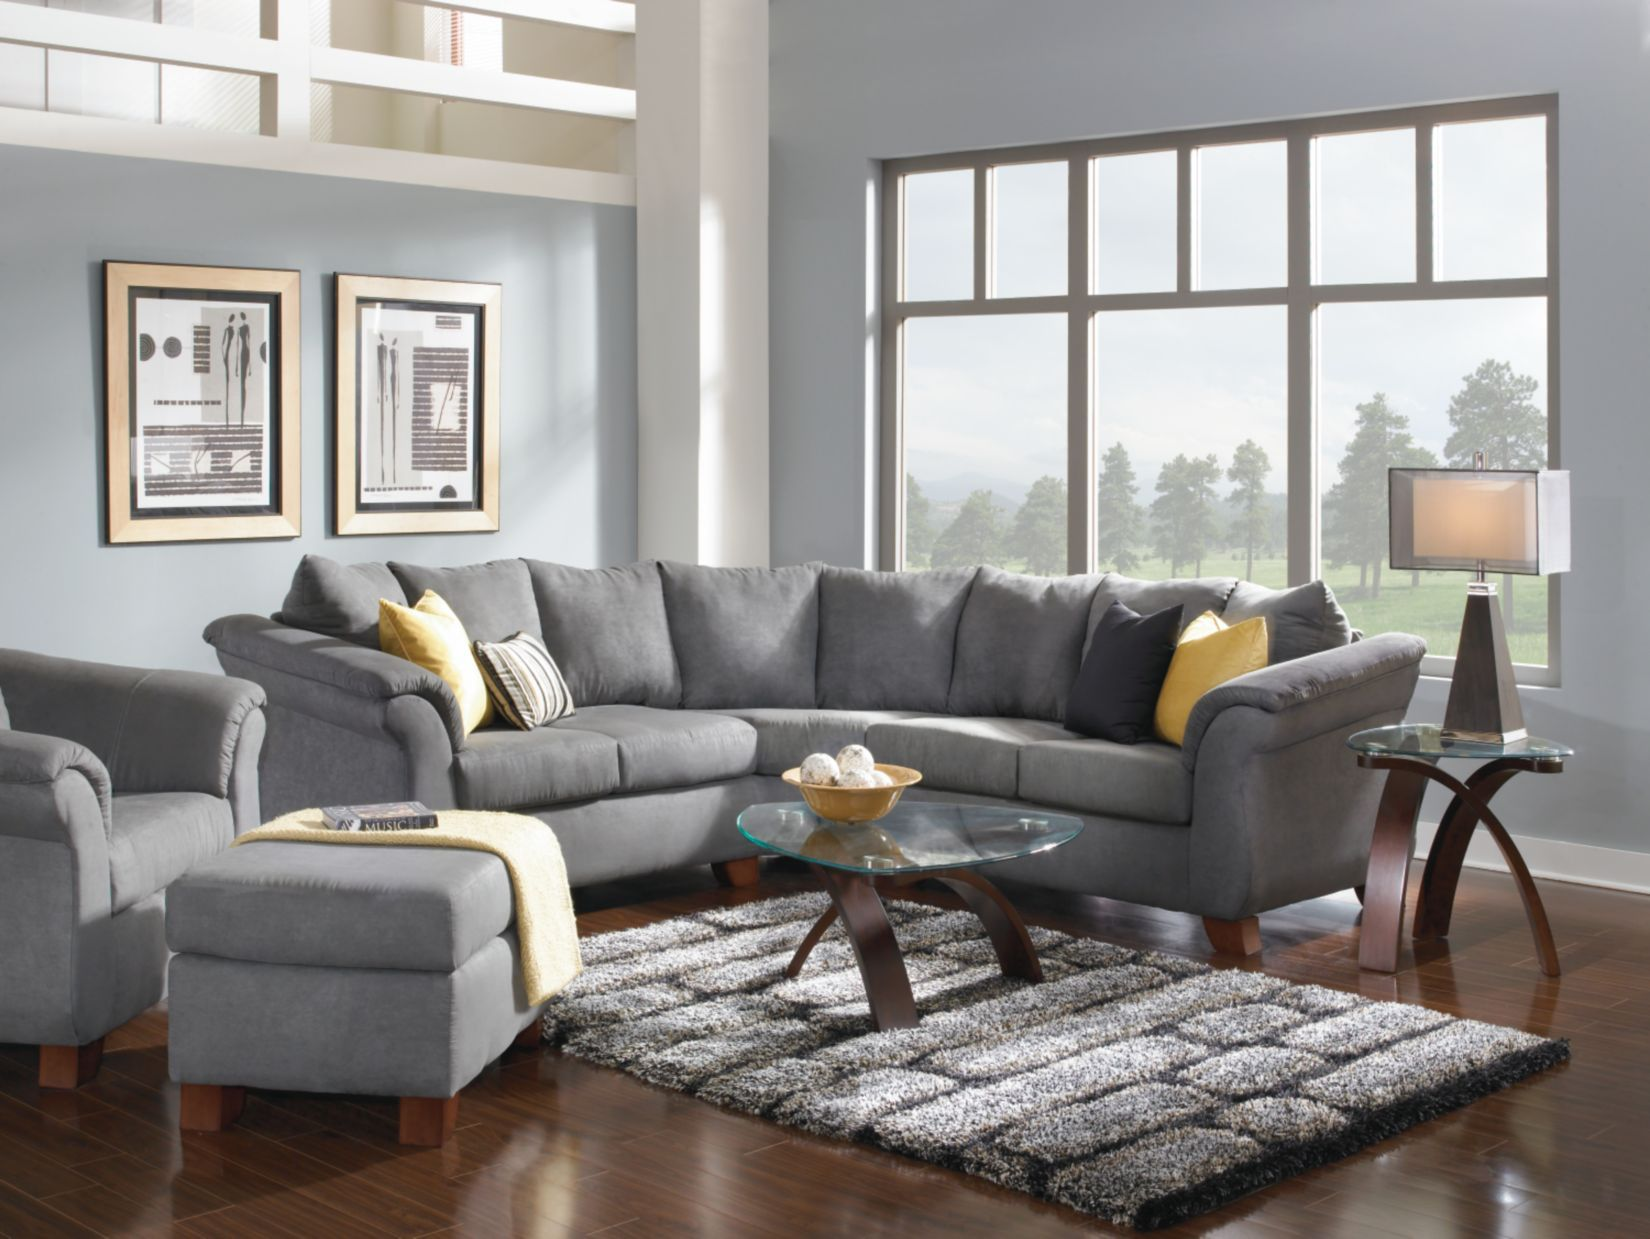 Adrian Graphite 4 Pc Living Room Package Value City Furniture Value City Furniture City Living Room Furniture